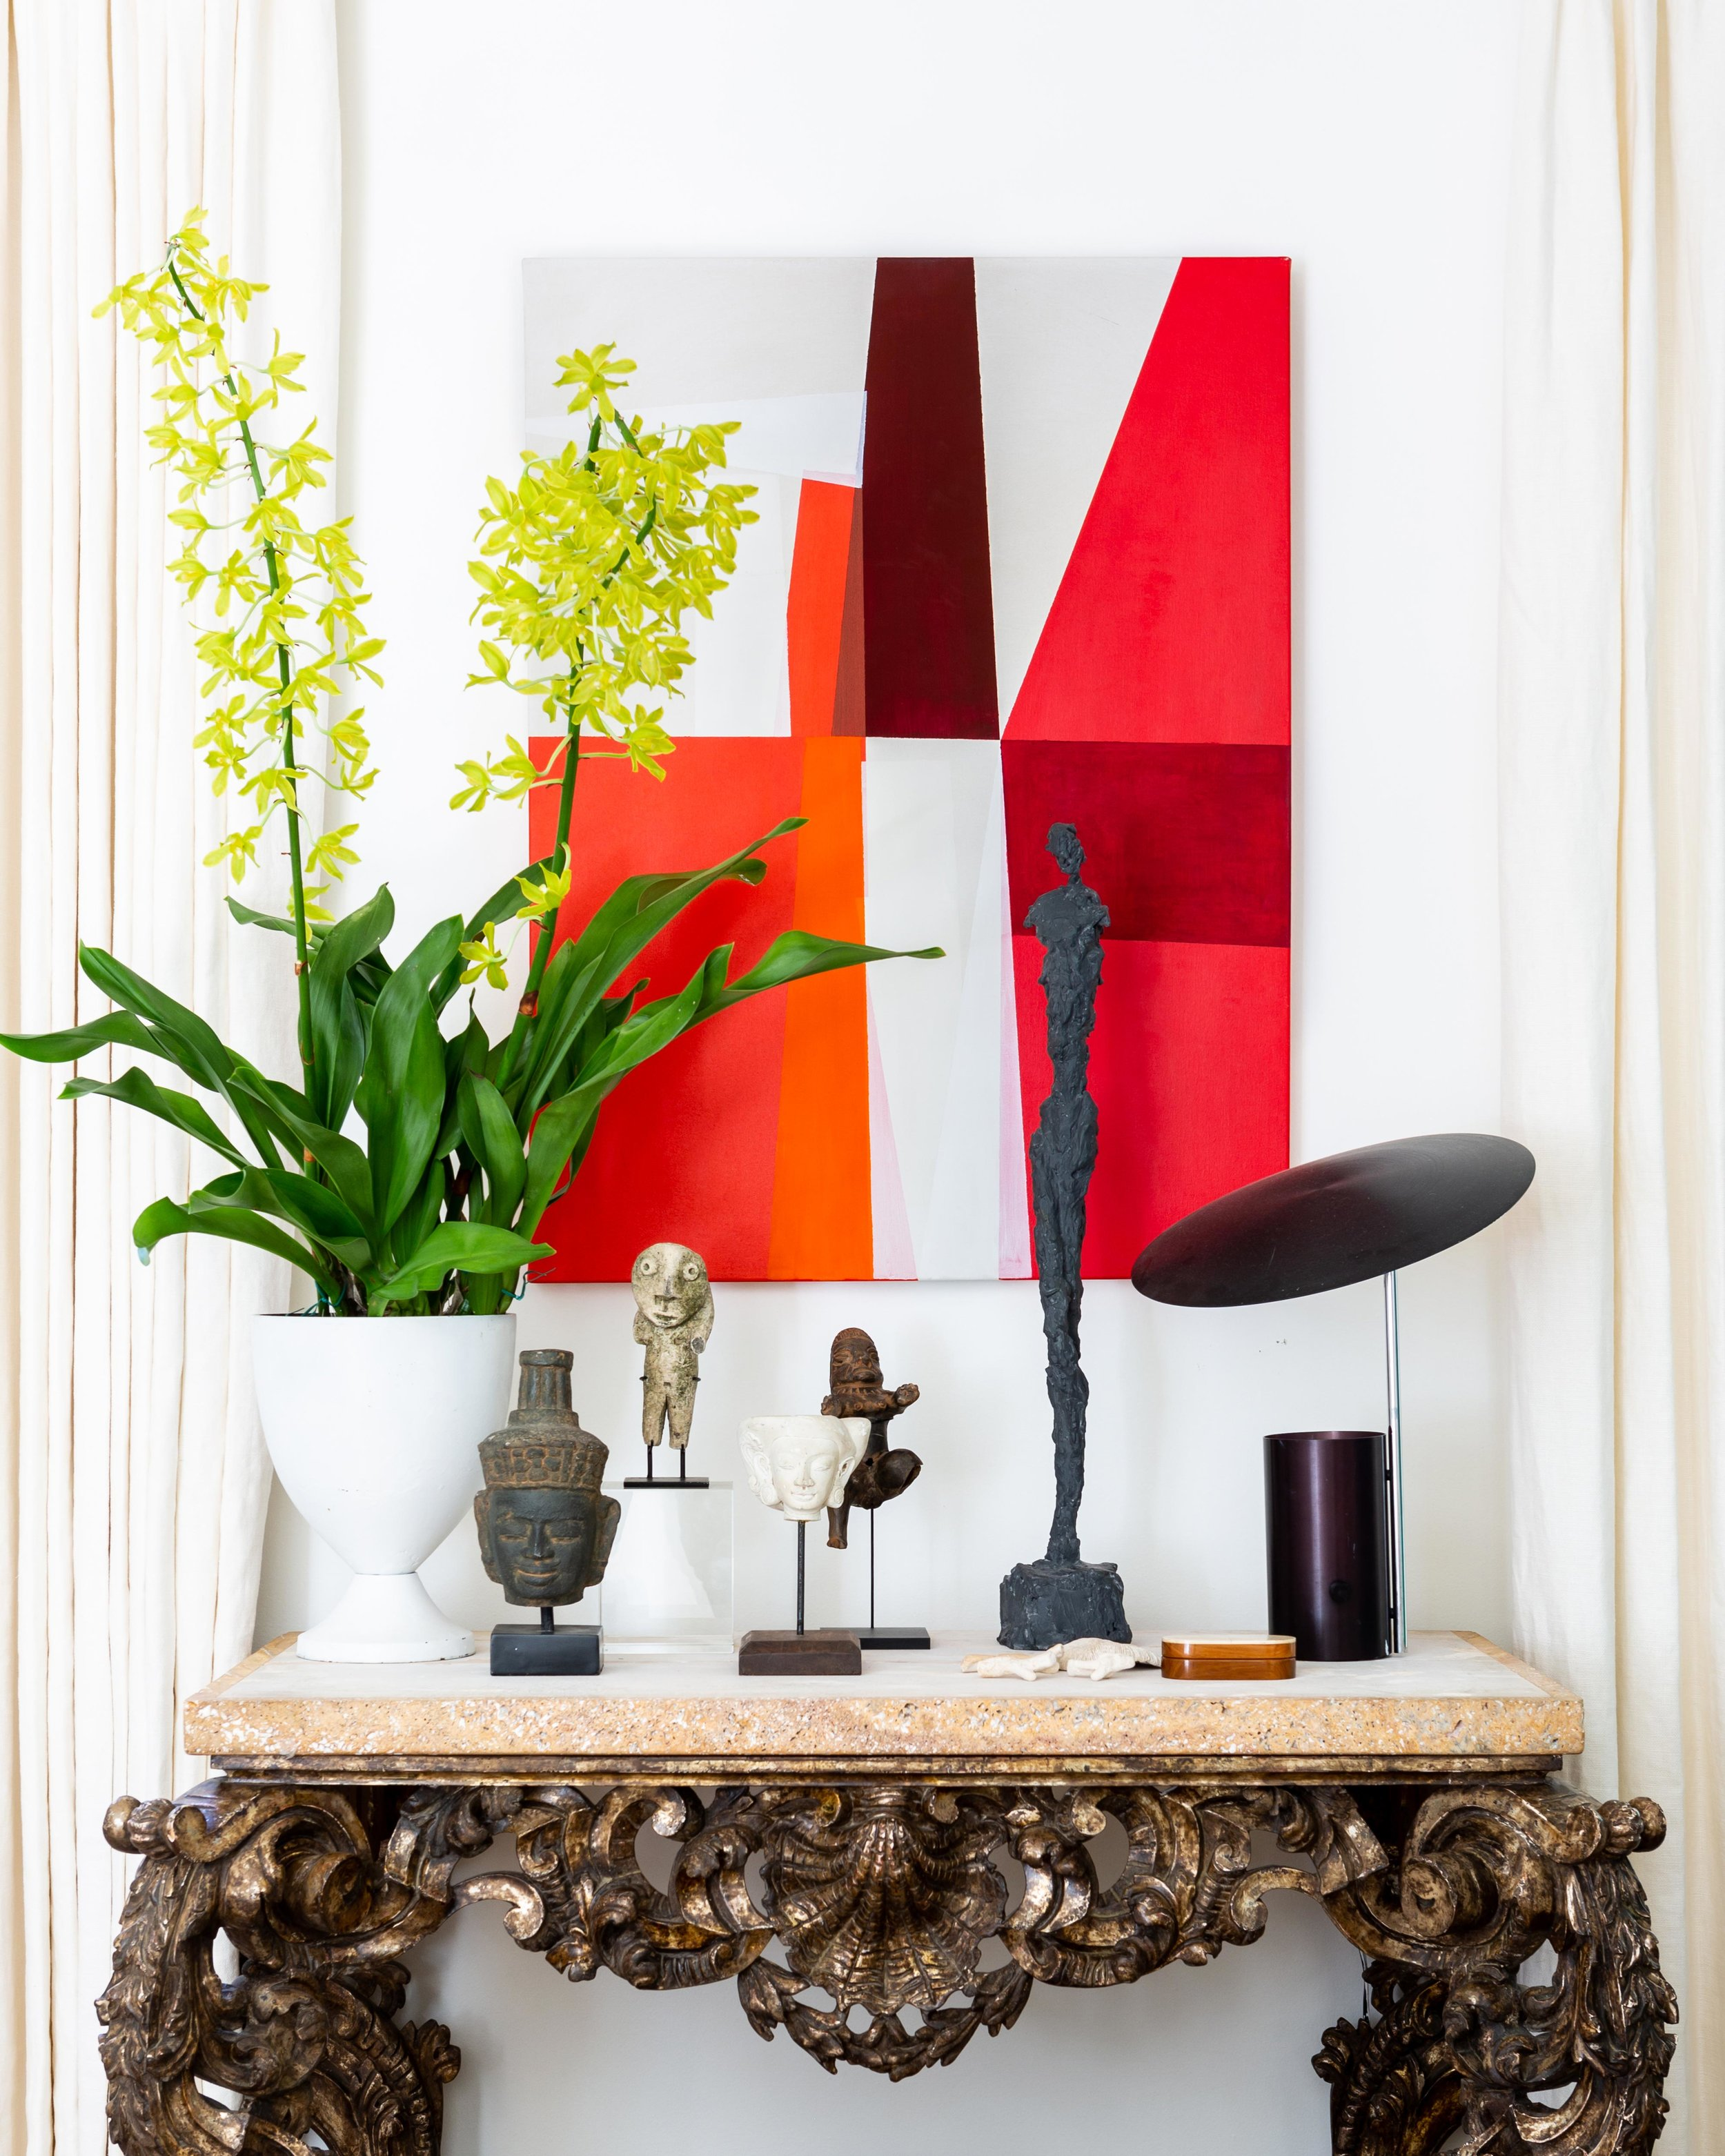 As a birthday present to himself, McLure bought this antique console from Interiors Market in Atlanta. A piece of abstract art by Catherine Booker Jones is displayed above it.